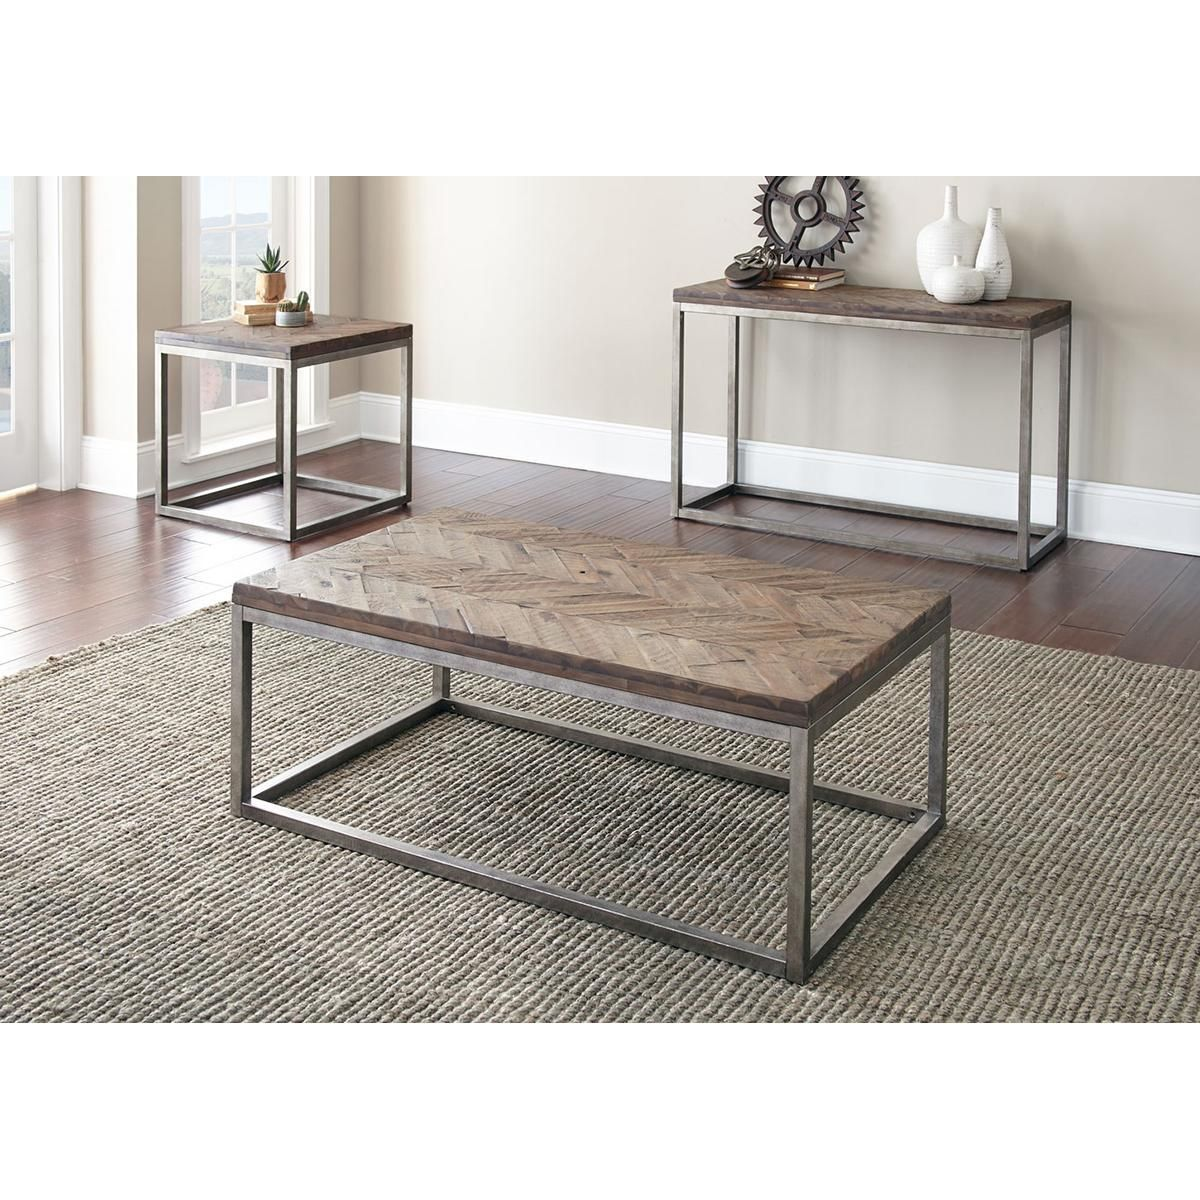 Product Main Image 3 3 Piece Coffee Table Set Coffee Table Coffee Table Setting [ 1200 x 1200 Pixel ]